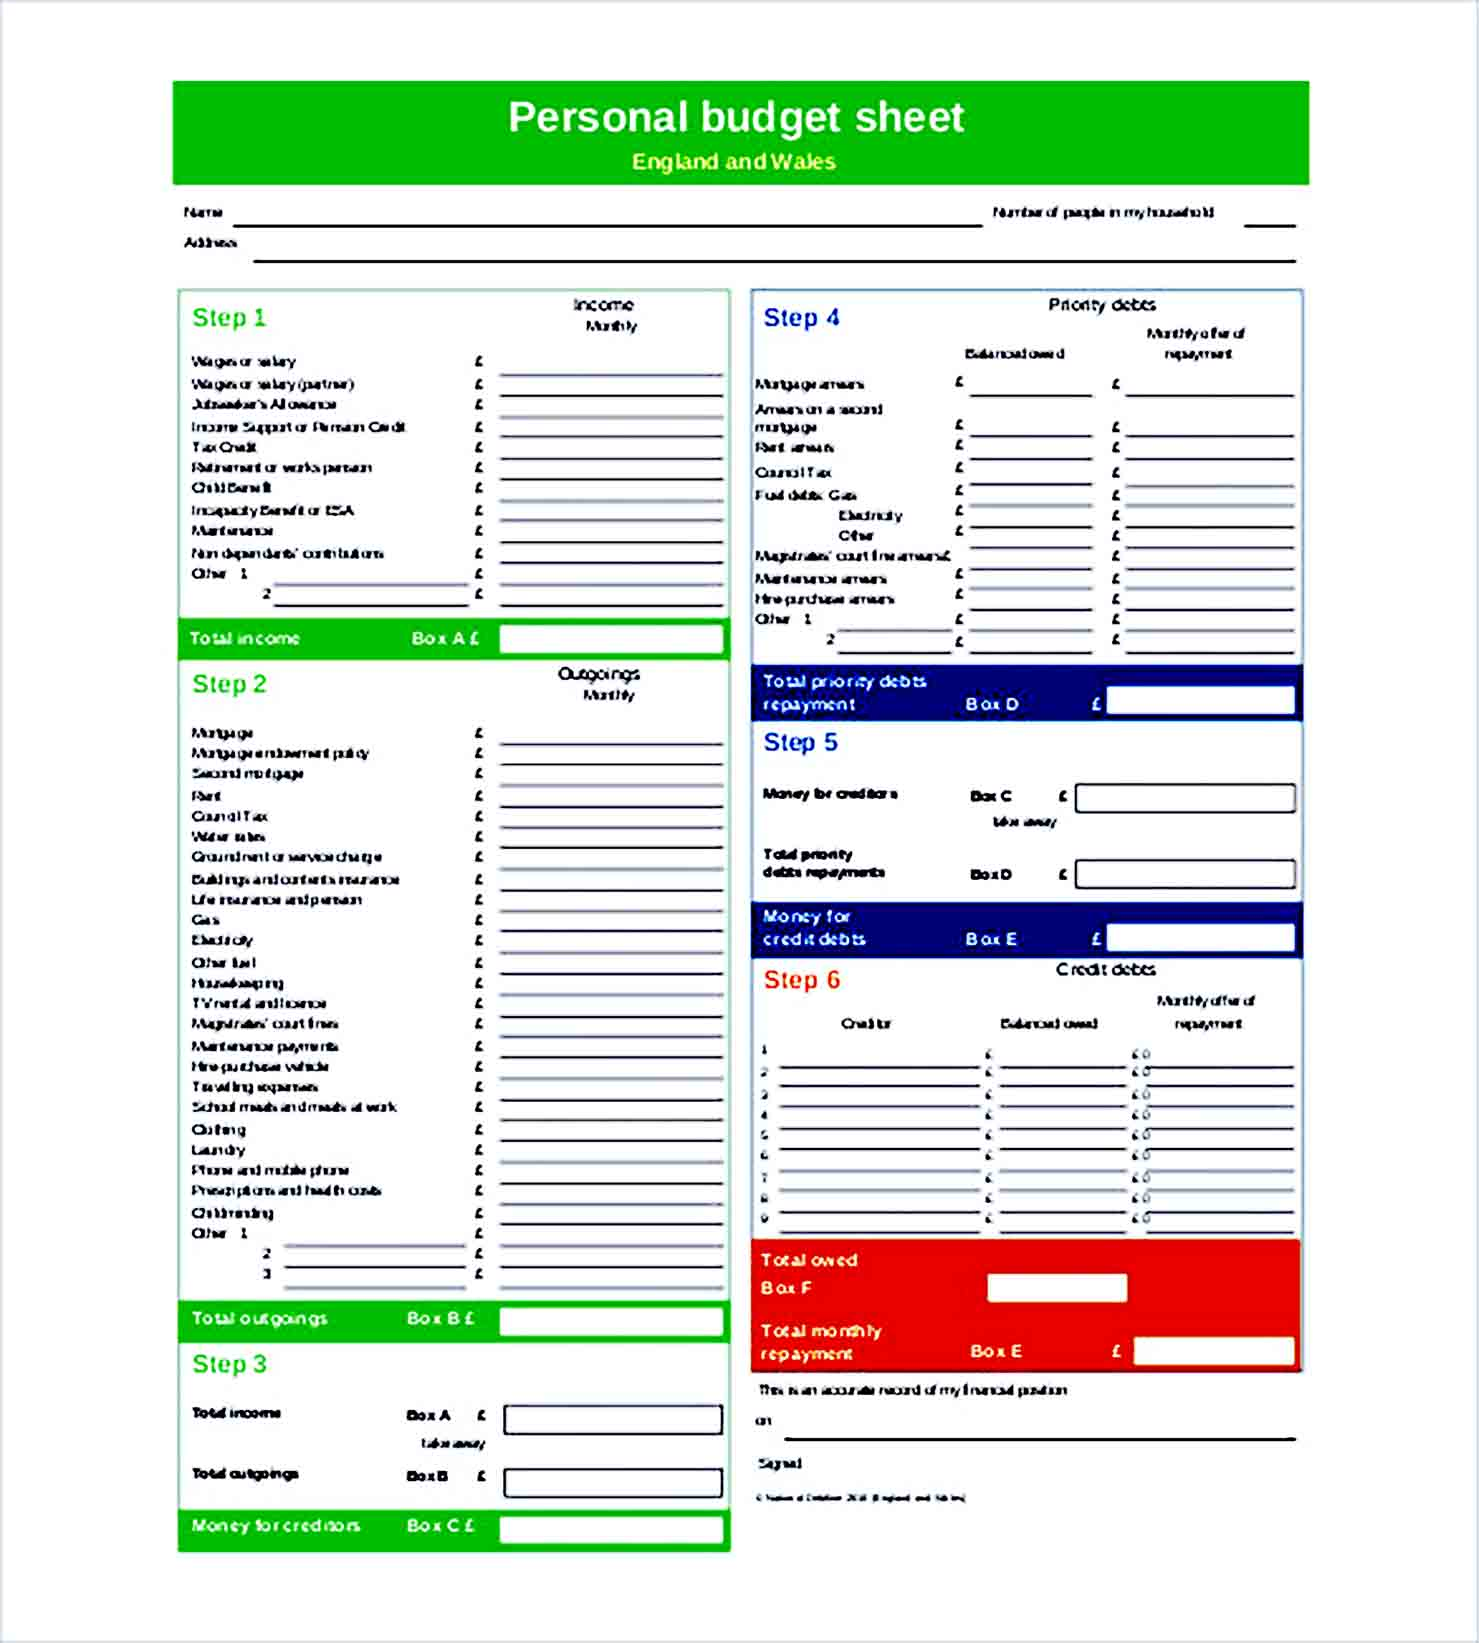 Sample personal budget sheet North Somerset Council